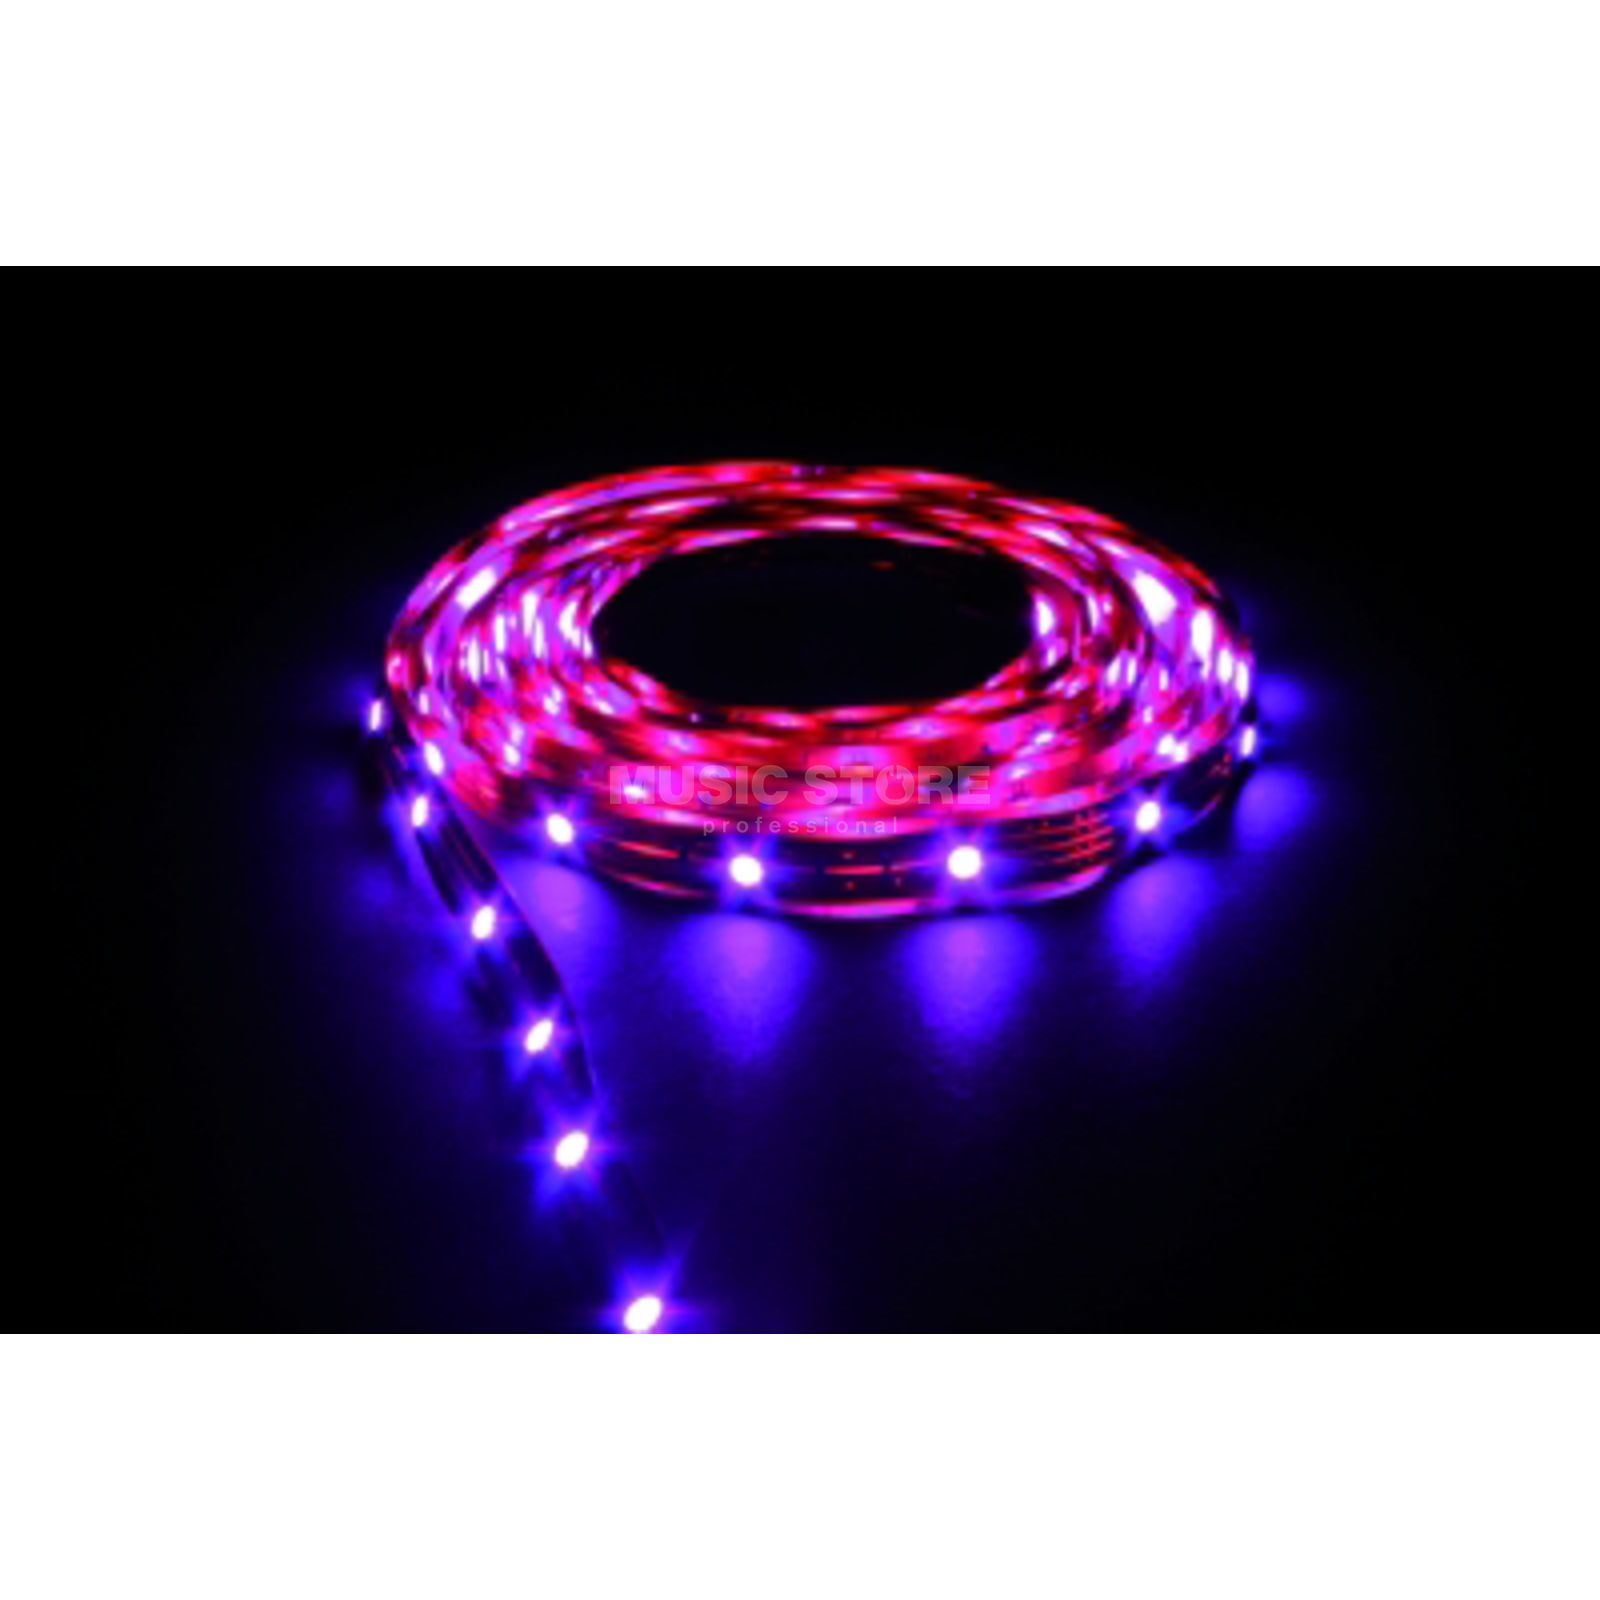 kapego flex strip ip20 rgb 5m led strip. Black Bedroom Furniture Sets. Home Design Ideas